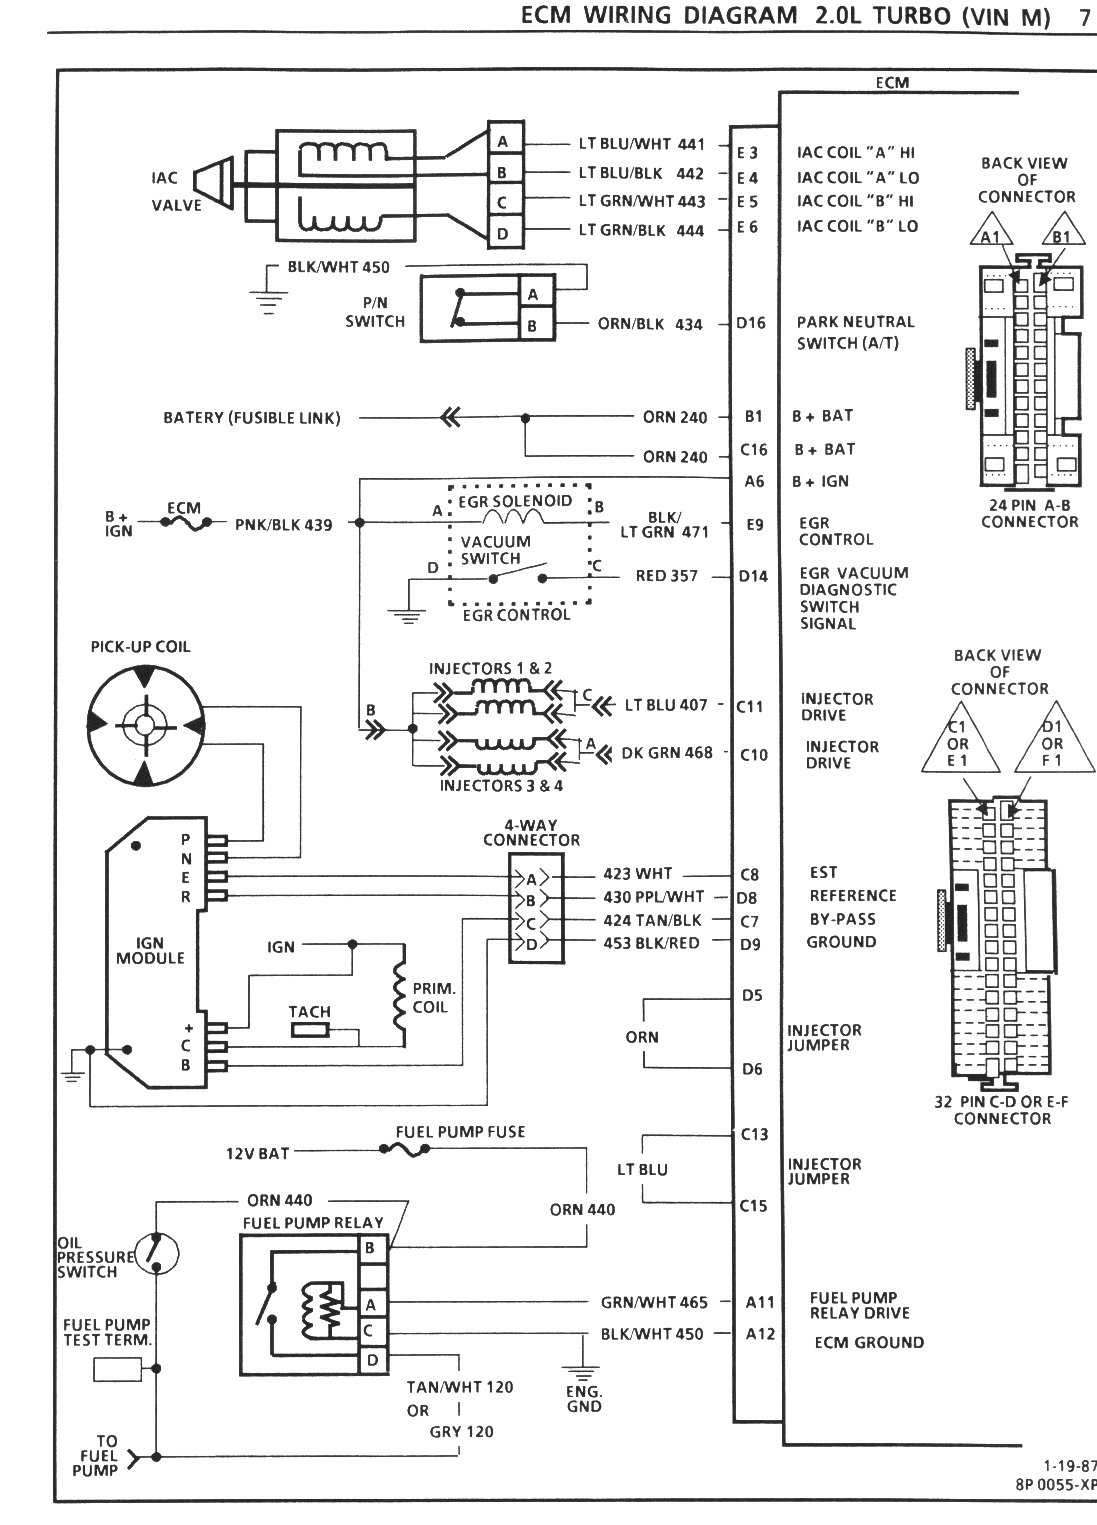 Jake Exhaust Brake Wiring Diagram as well Detroit Diesel Engine Diagnostic Tools additionally 2003 Freightliner Wiring Diagram furthermore Detroit Series 60 ECM Wiring Diagram besides Detroit Diesel Series 60 ECM Wiring Diagram. on detroit sel wiring schematics